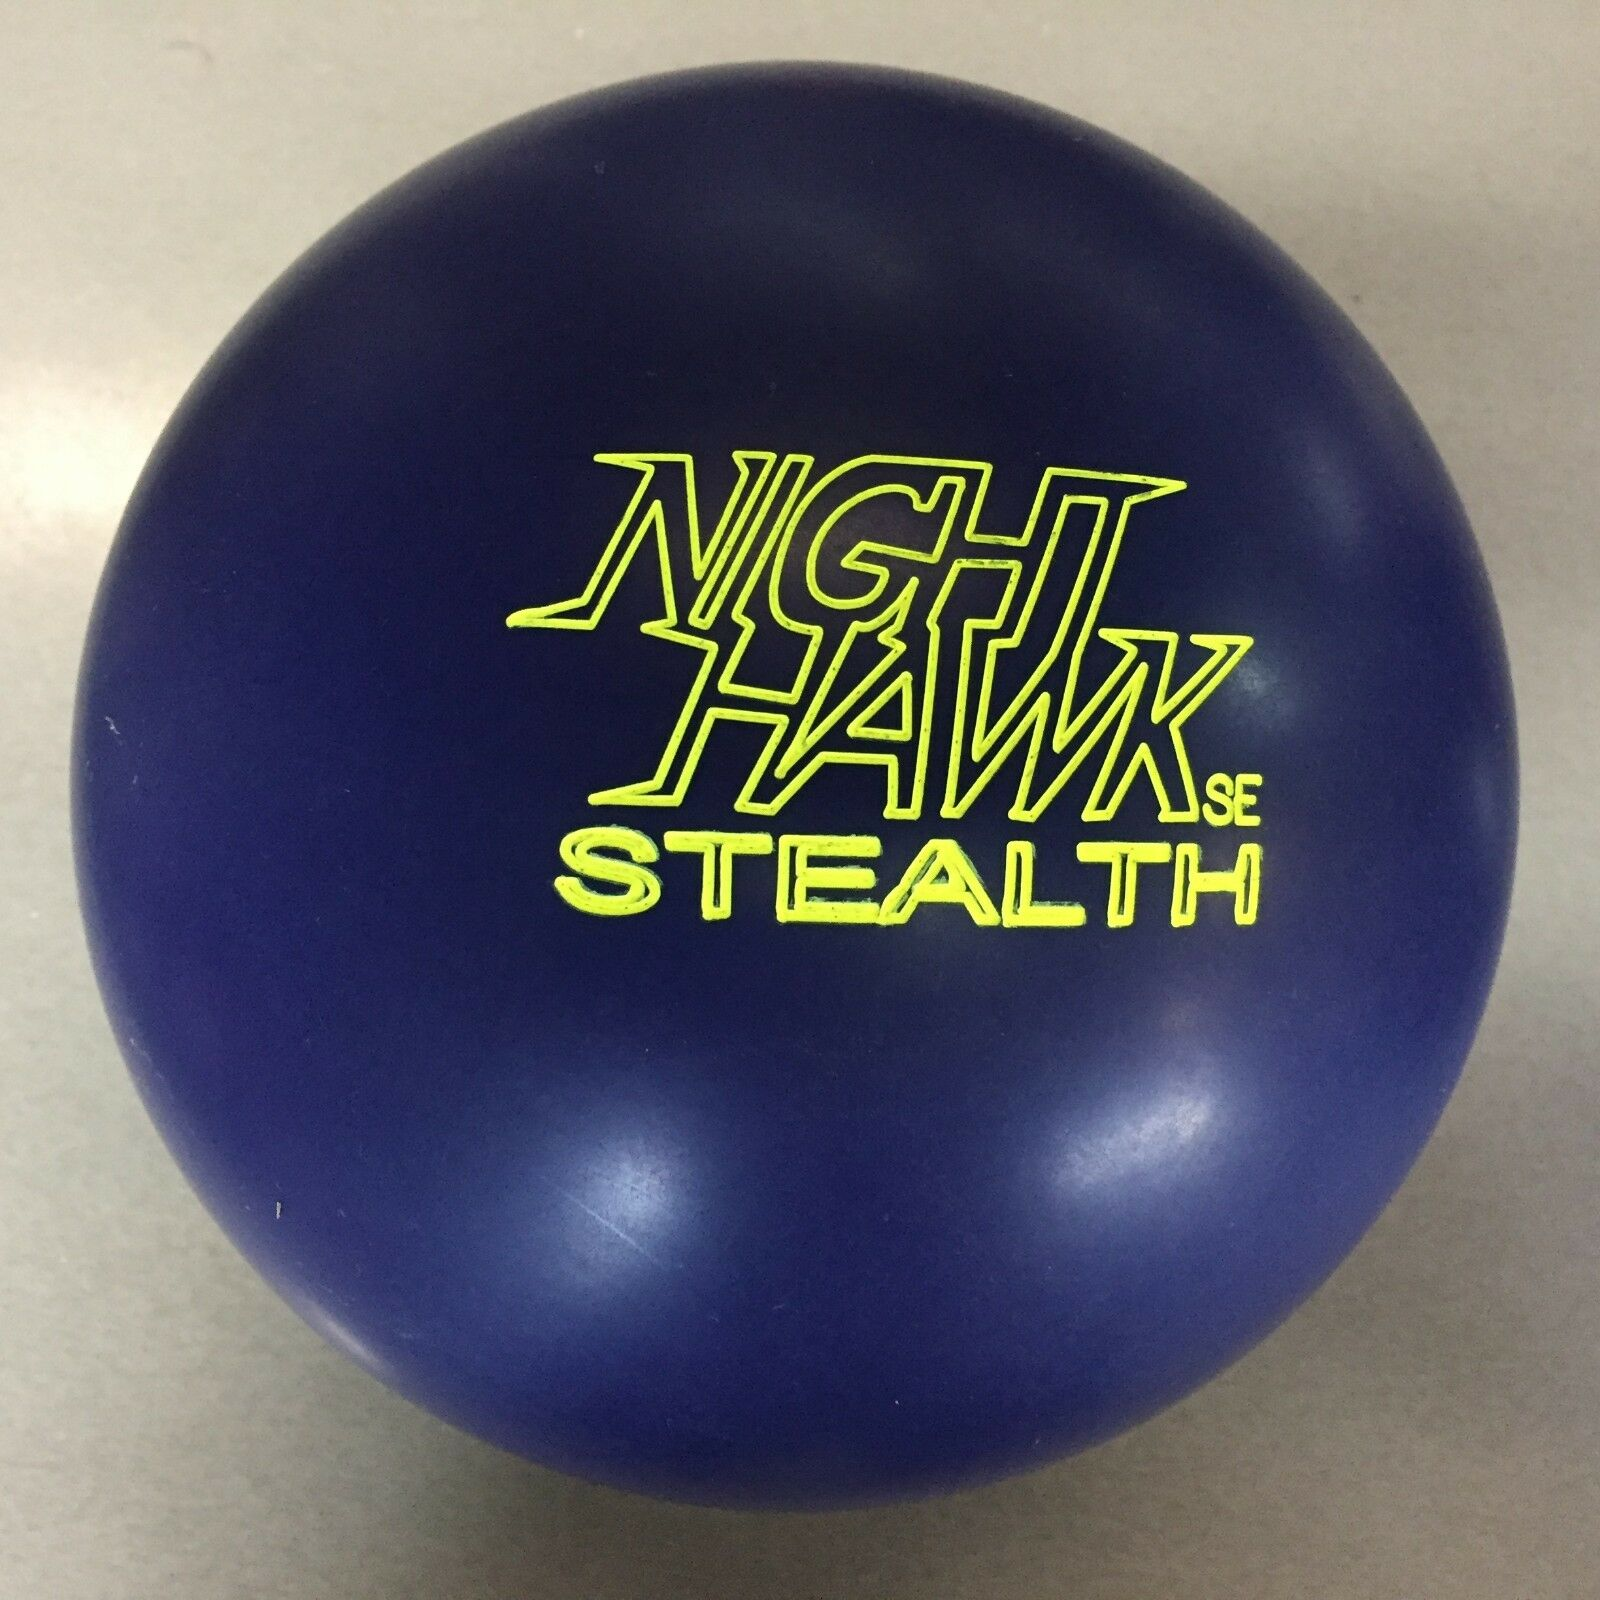 AMF Nighthawk STEALTH SE Bowling Ball  14 lb.  1ST QUAL  BRAND NEW IN BOX